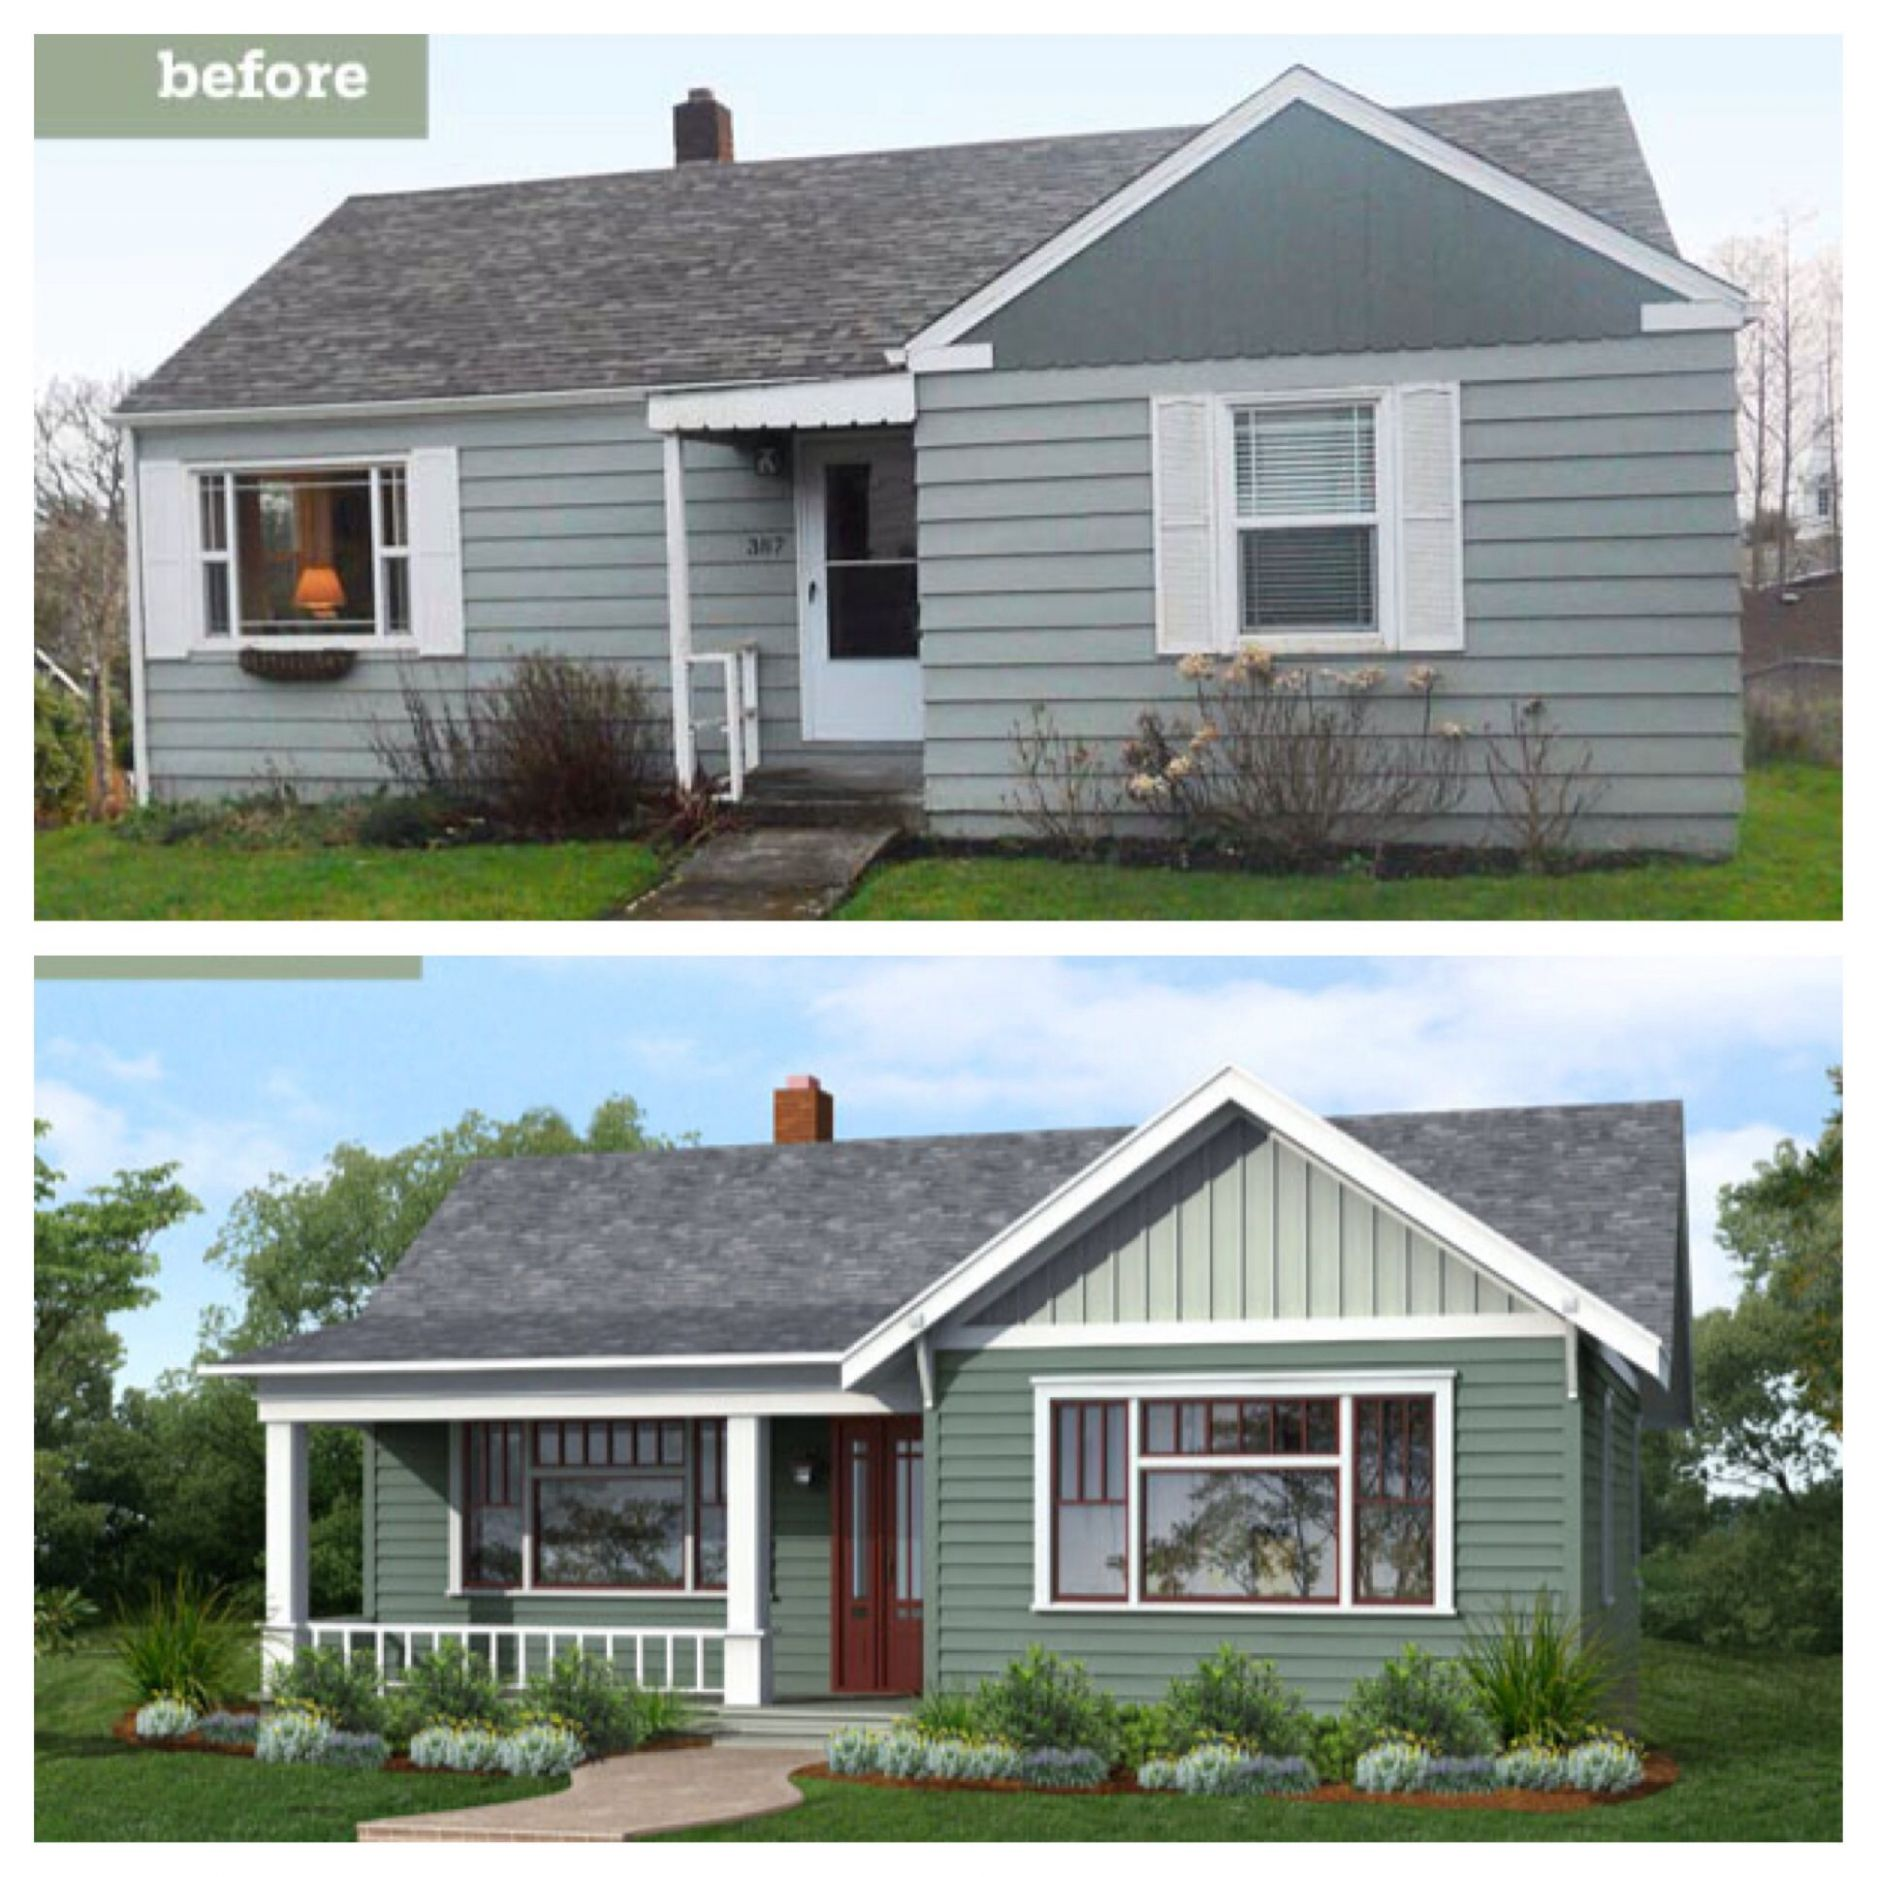 Before and after curb appeal. Add front porch. Expand windows ...